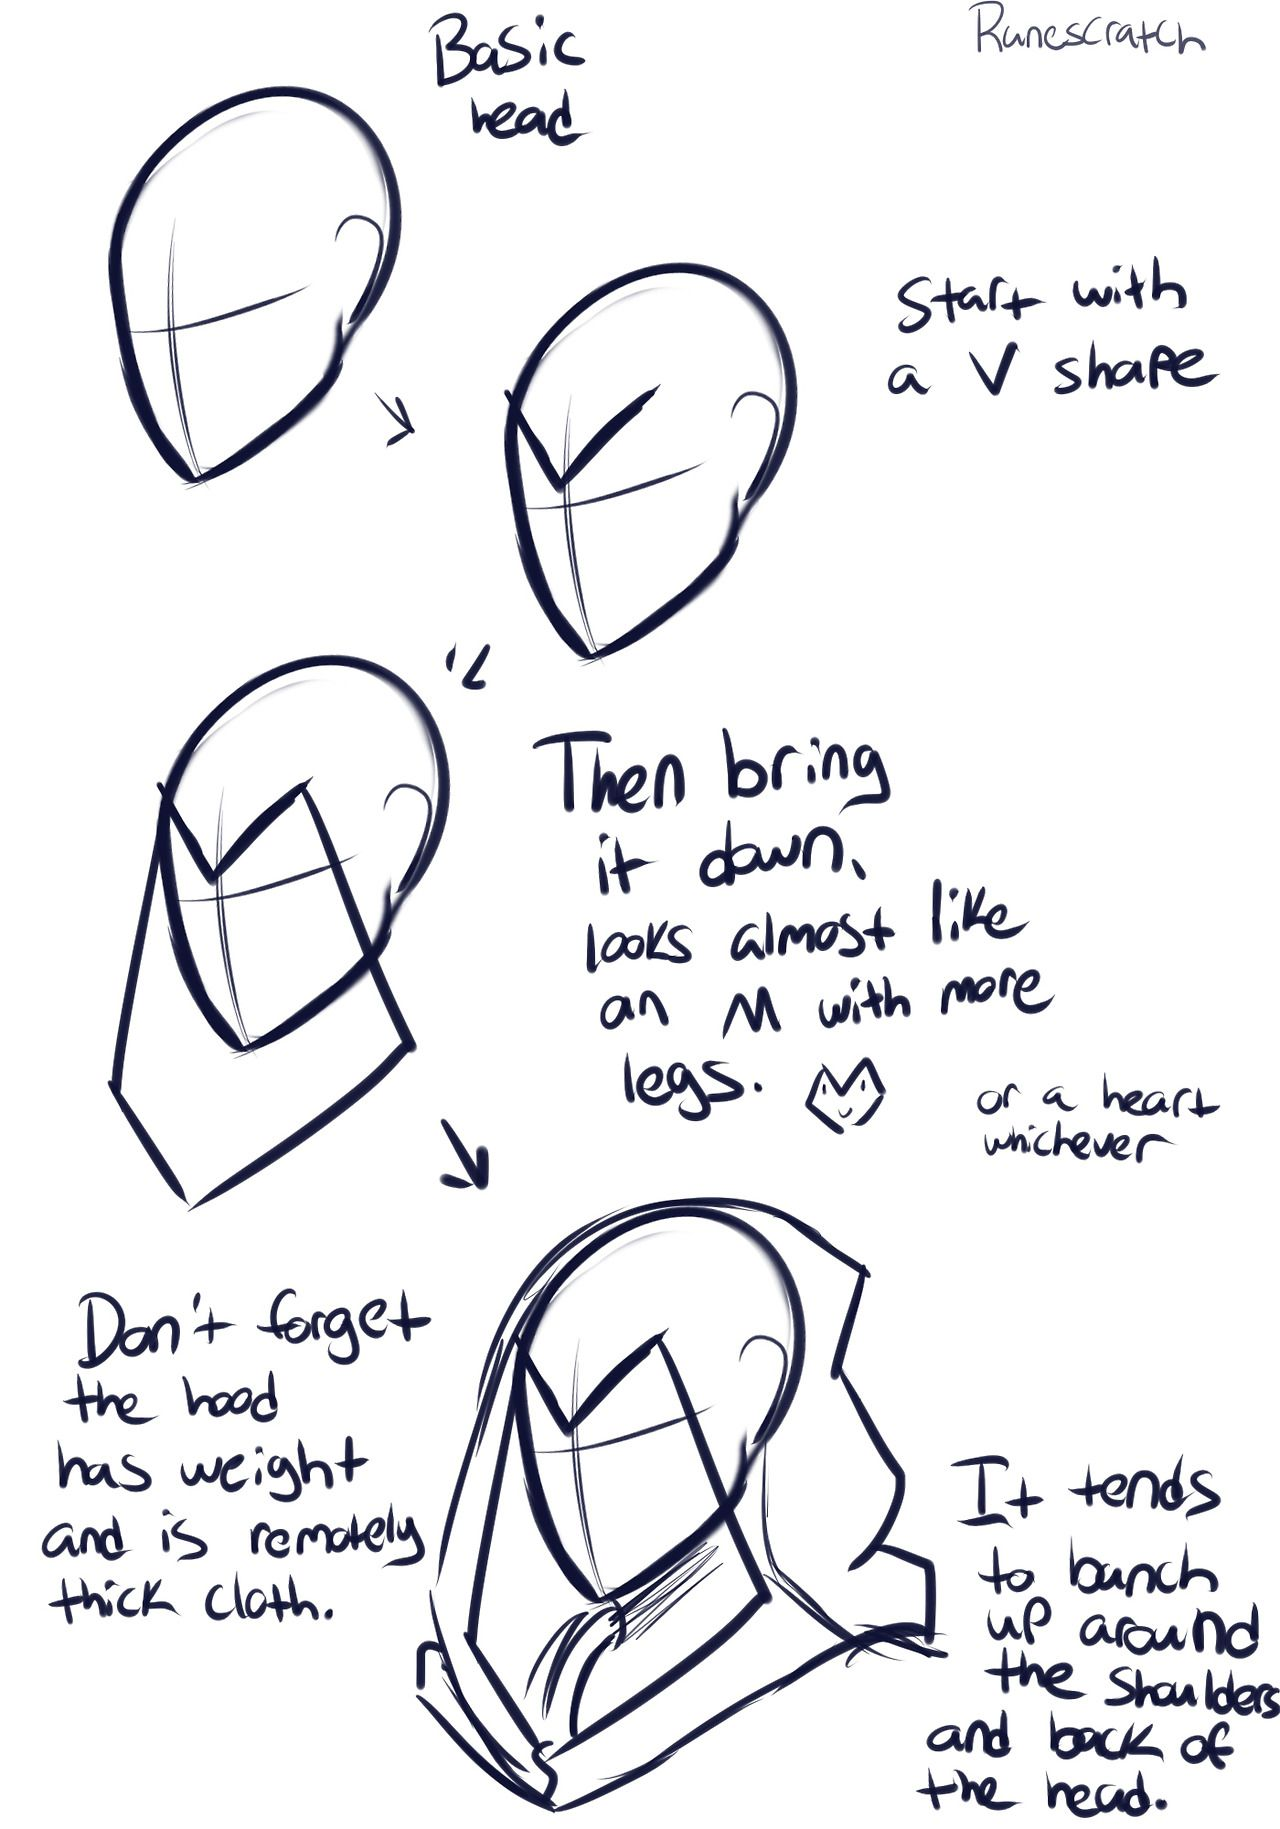 How To Draw A Hood Down : Hoods, Runescratch, Tumblr, Drawing, Tips,, Tutorial,, Reference, Poses